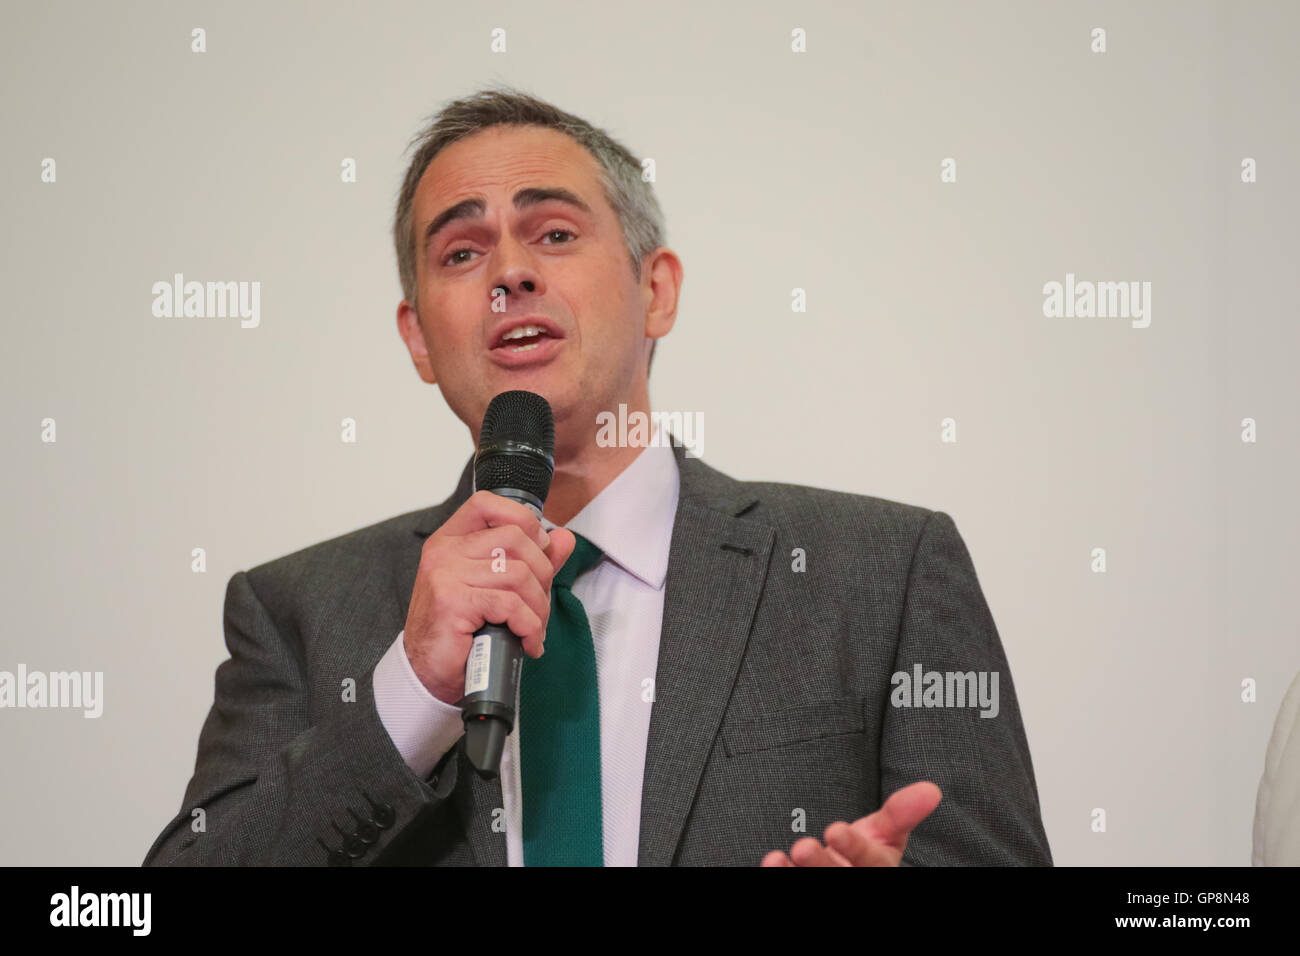 Jonathan Bartley, elected co-Leader of the Green Party of England and Wales,, September 2016 - Stock Image